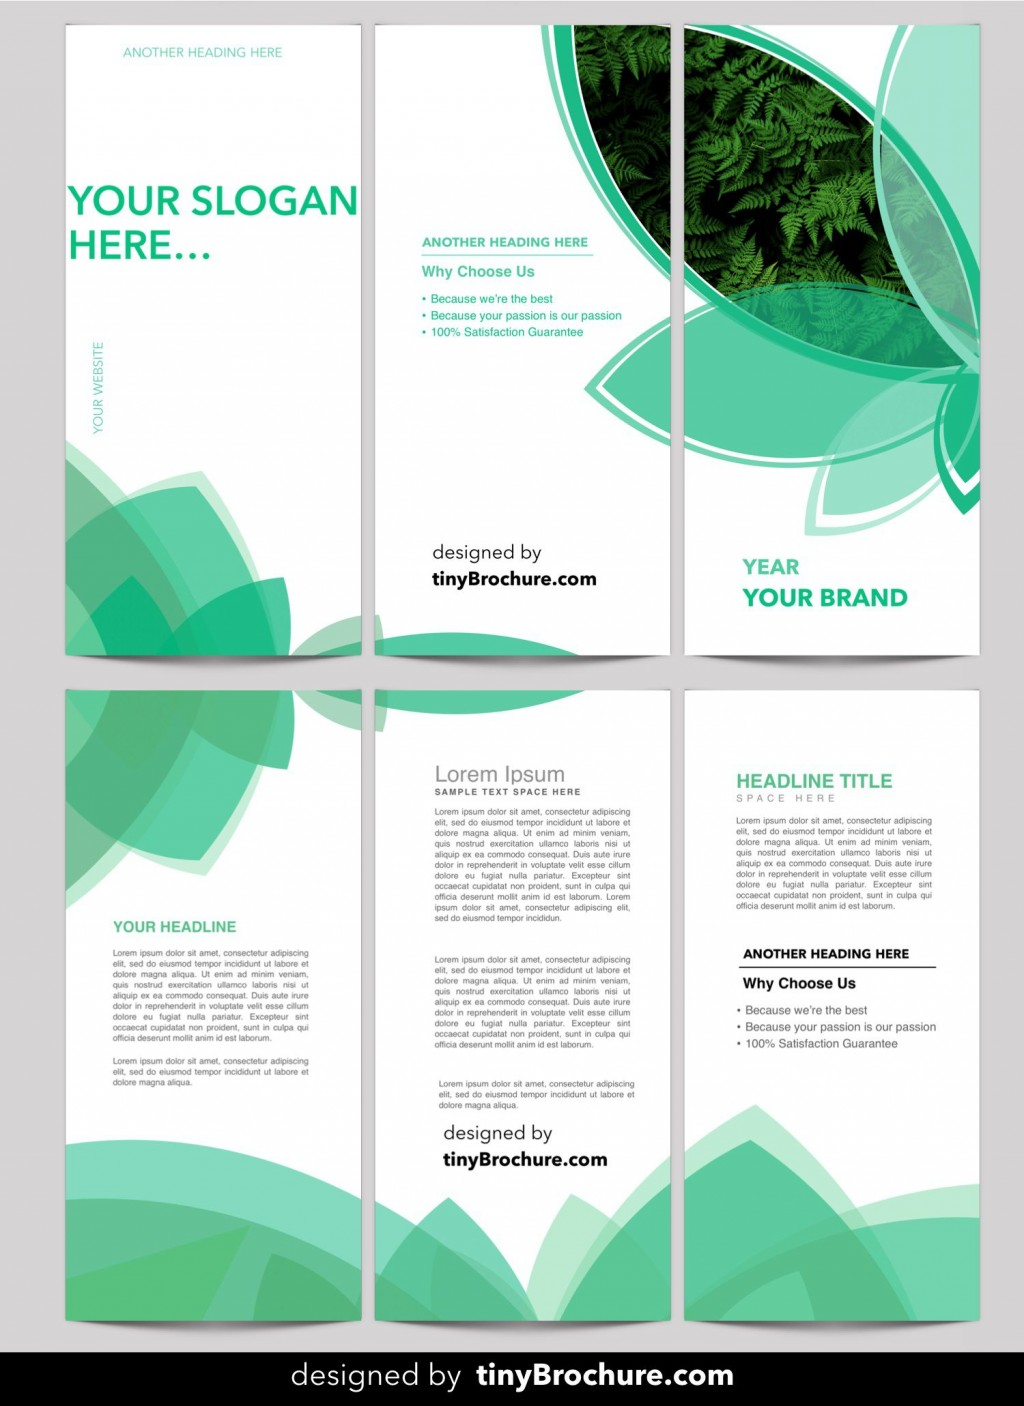 001 Dreaded Download Template For Word Concept  Wordpres Free Resume 2007 Addres LabelLarge